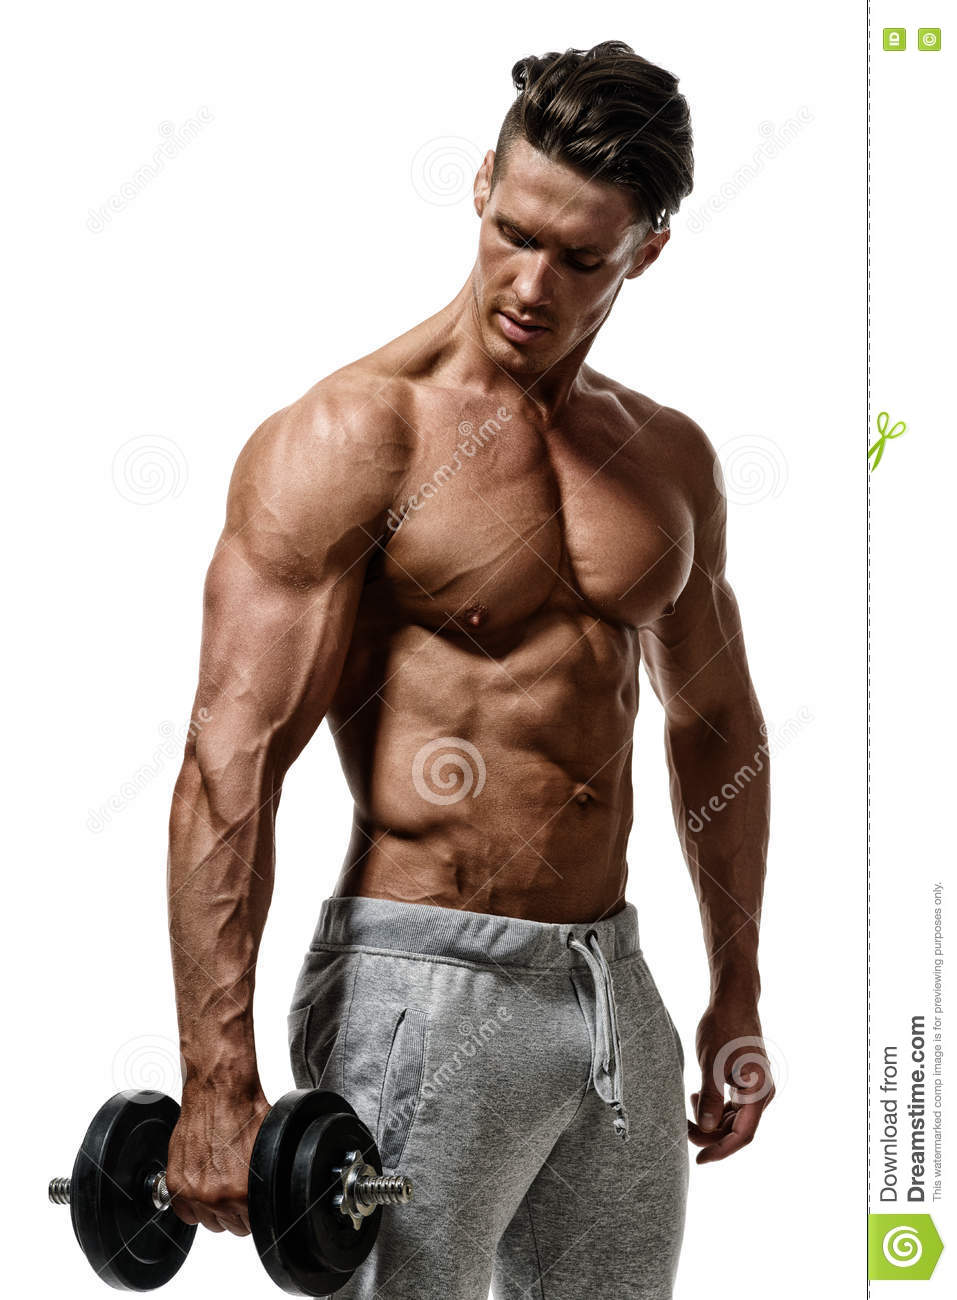 Macho gay muscle men